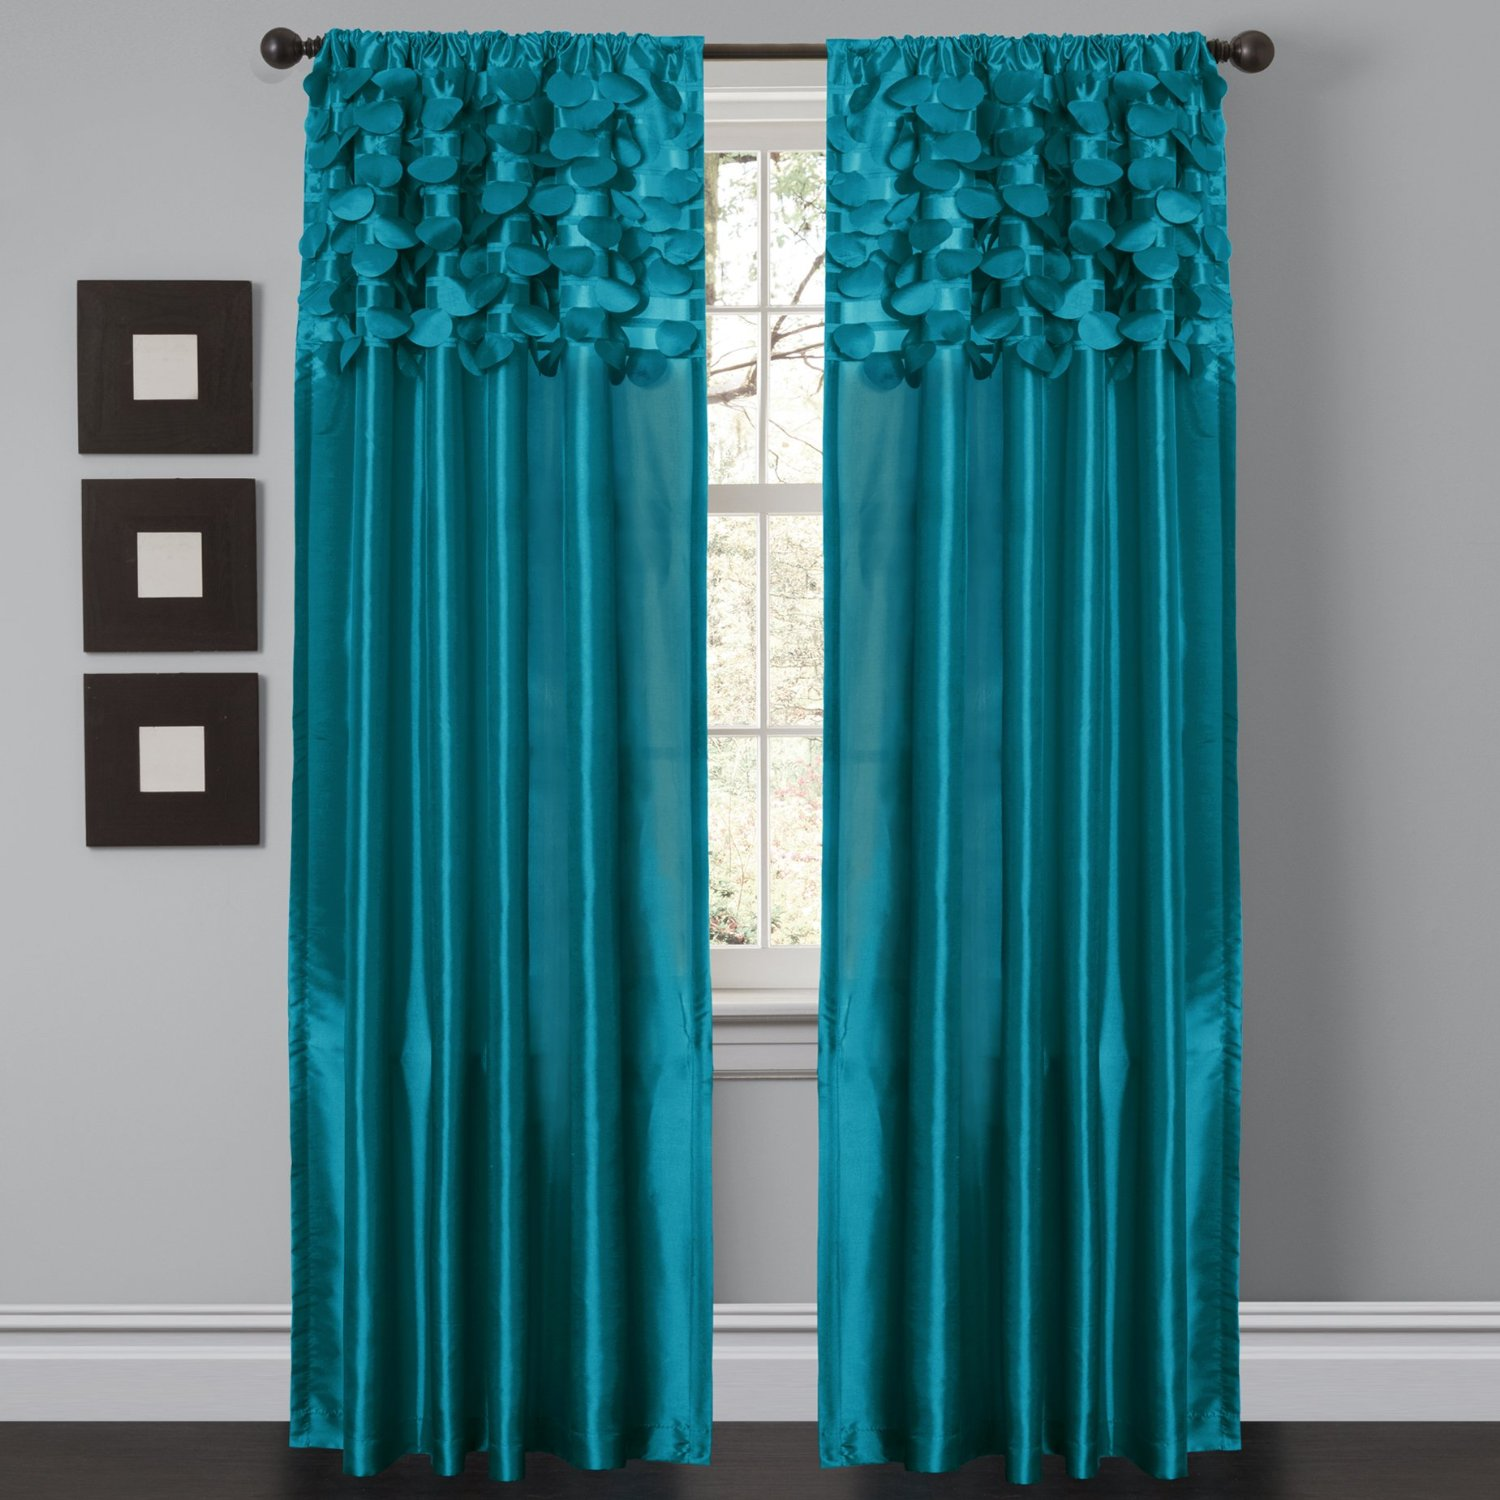 price velvet signature single hover pocket pole window vpch panel blackout burgundy half drapes to htm zoom teal curtains curtain productdetail